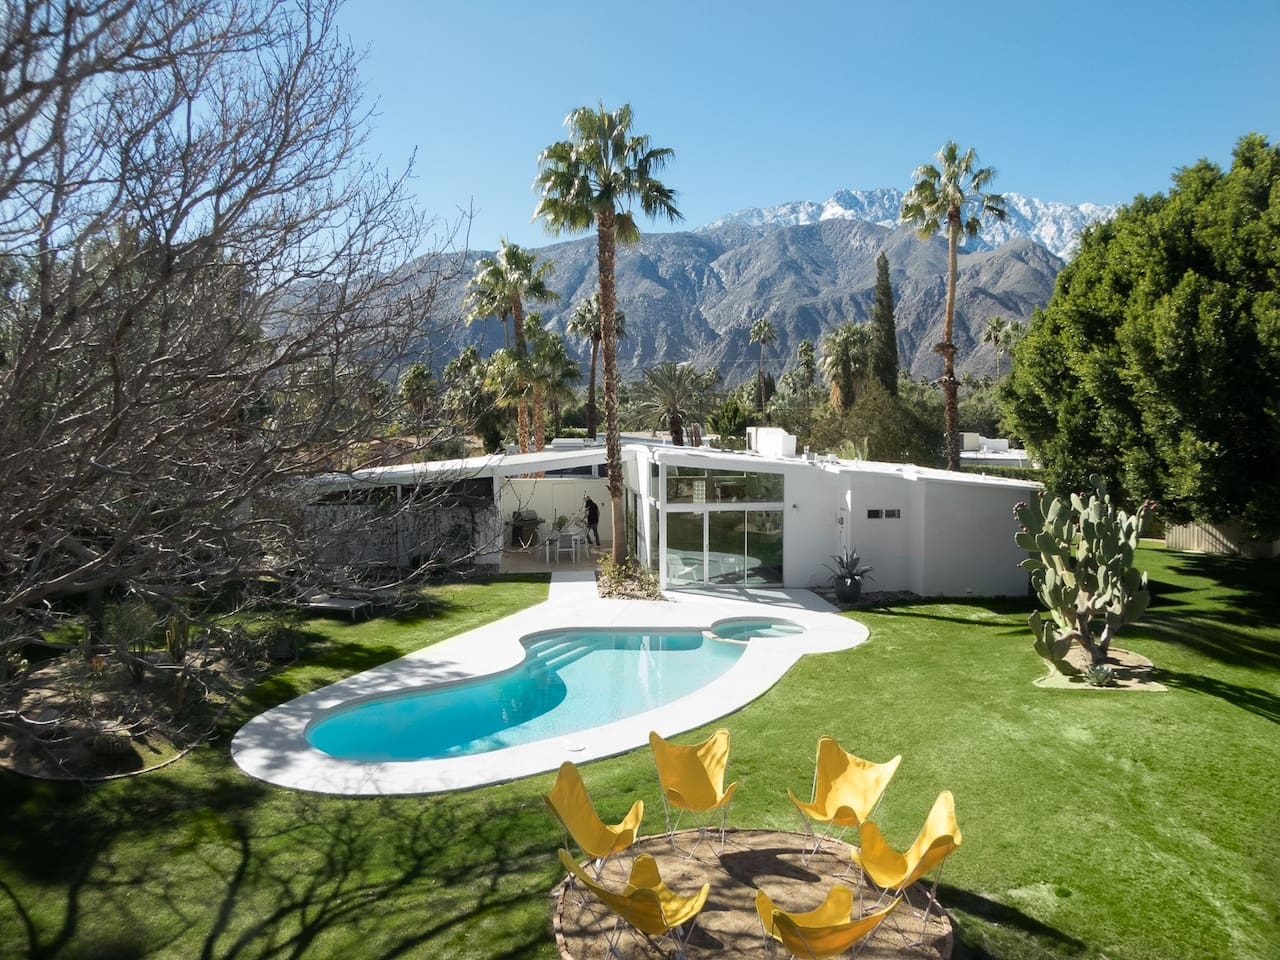 Welcome to Palm Springs! This home is professionally managed by TurnKey Vacation Rentals.